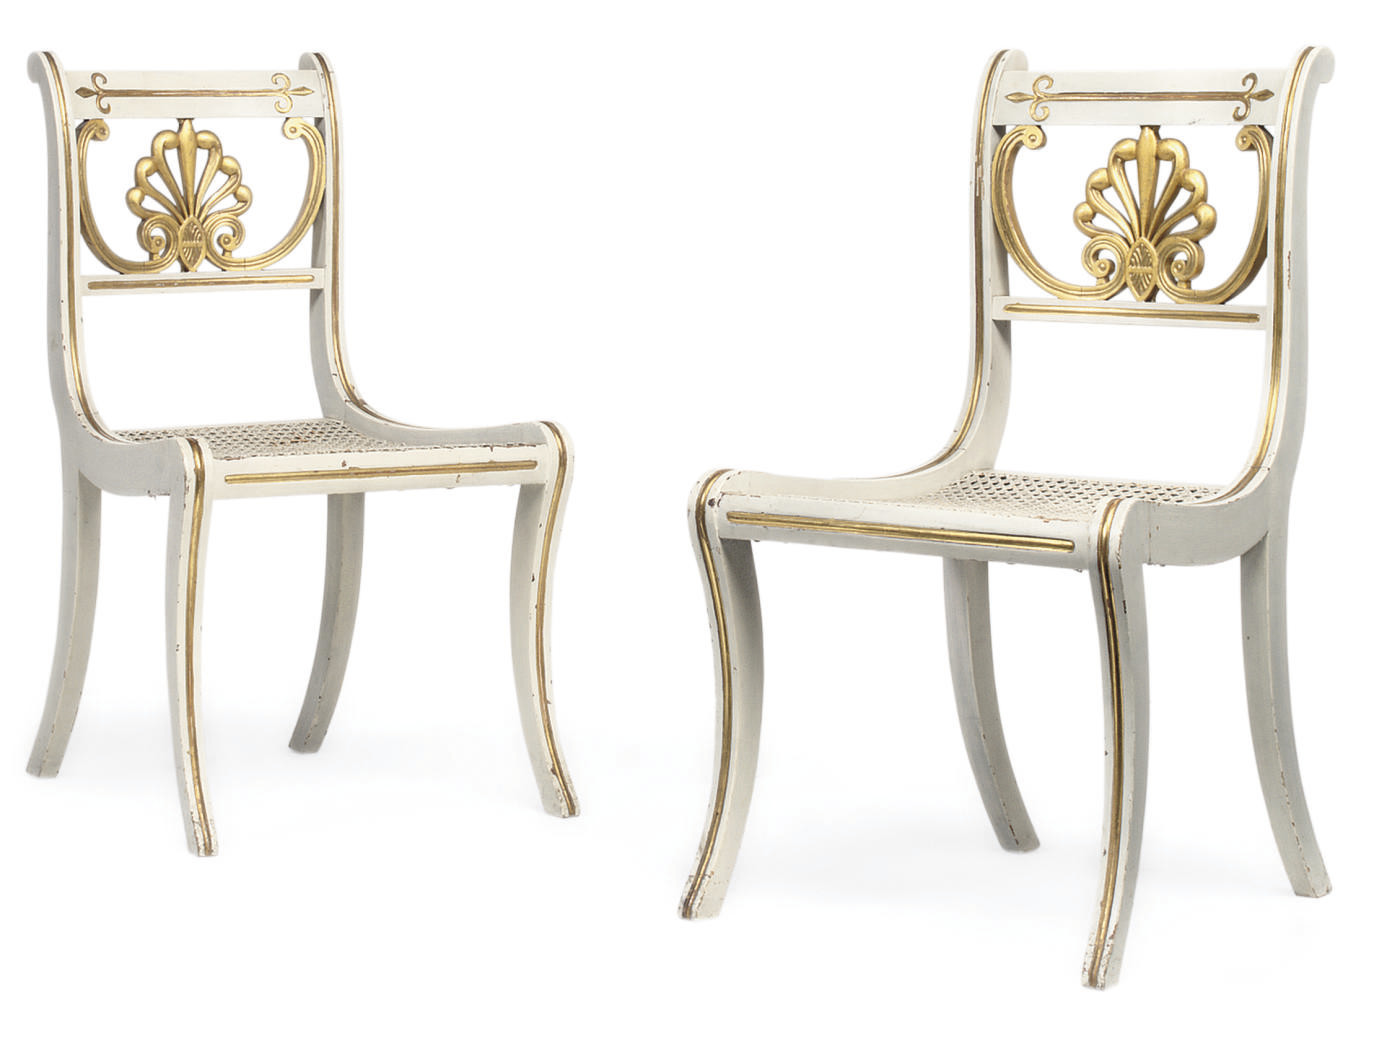 A PAIR OF SCOTTISH GEORGE IV WHITE-PAINTED AND PARCEL-GILT DINING CHAIRS